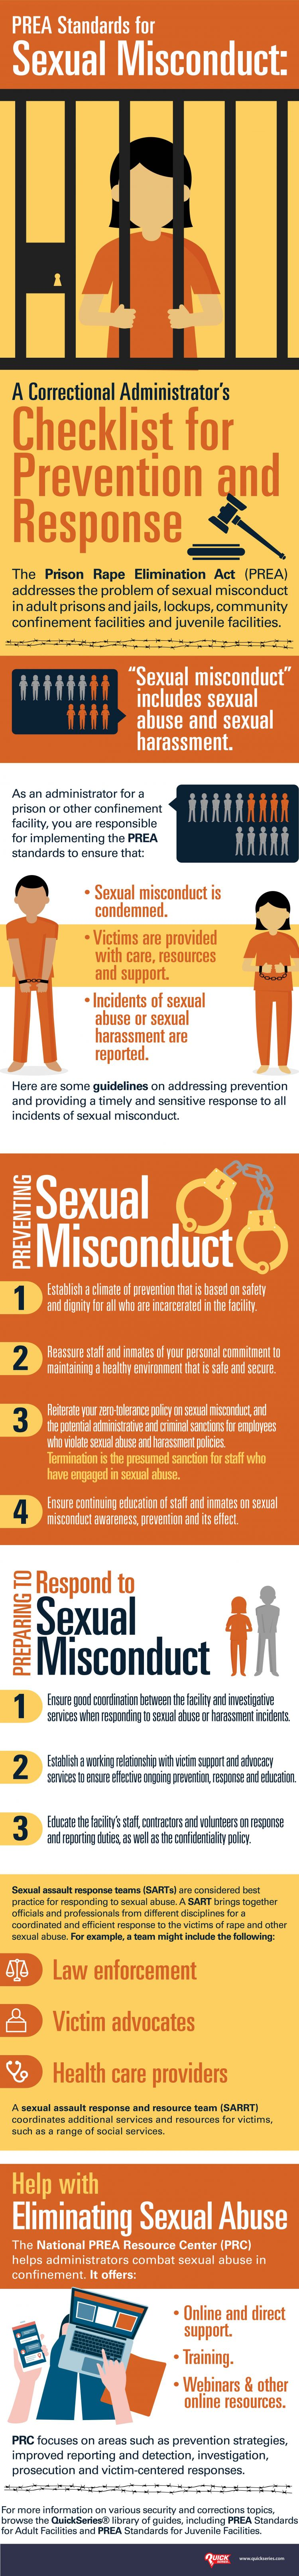 PREA sexual misconduct